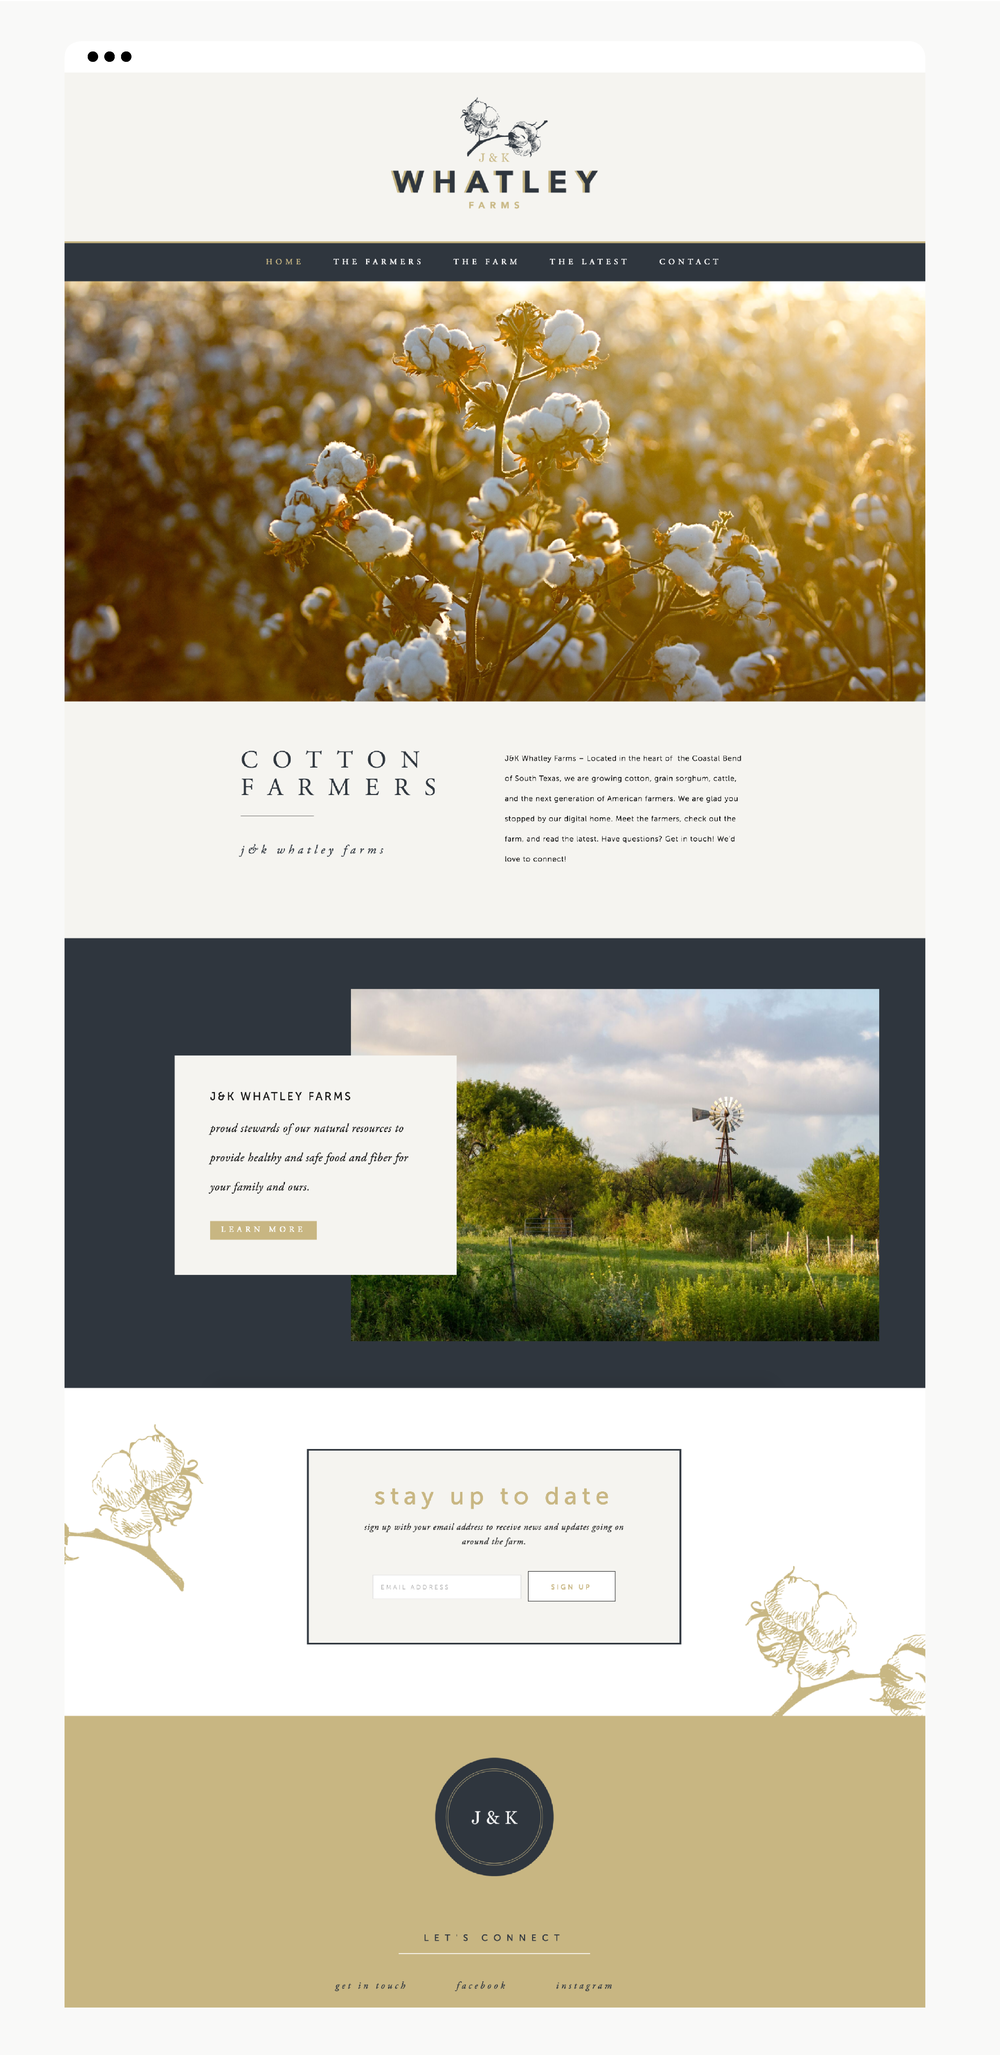 Whatley_Homepage_WebDesigner_Farm_Cotton_BrightenMade.png